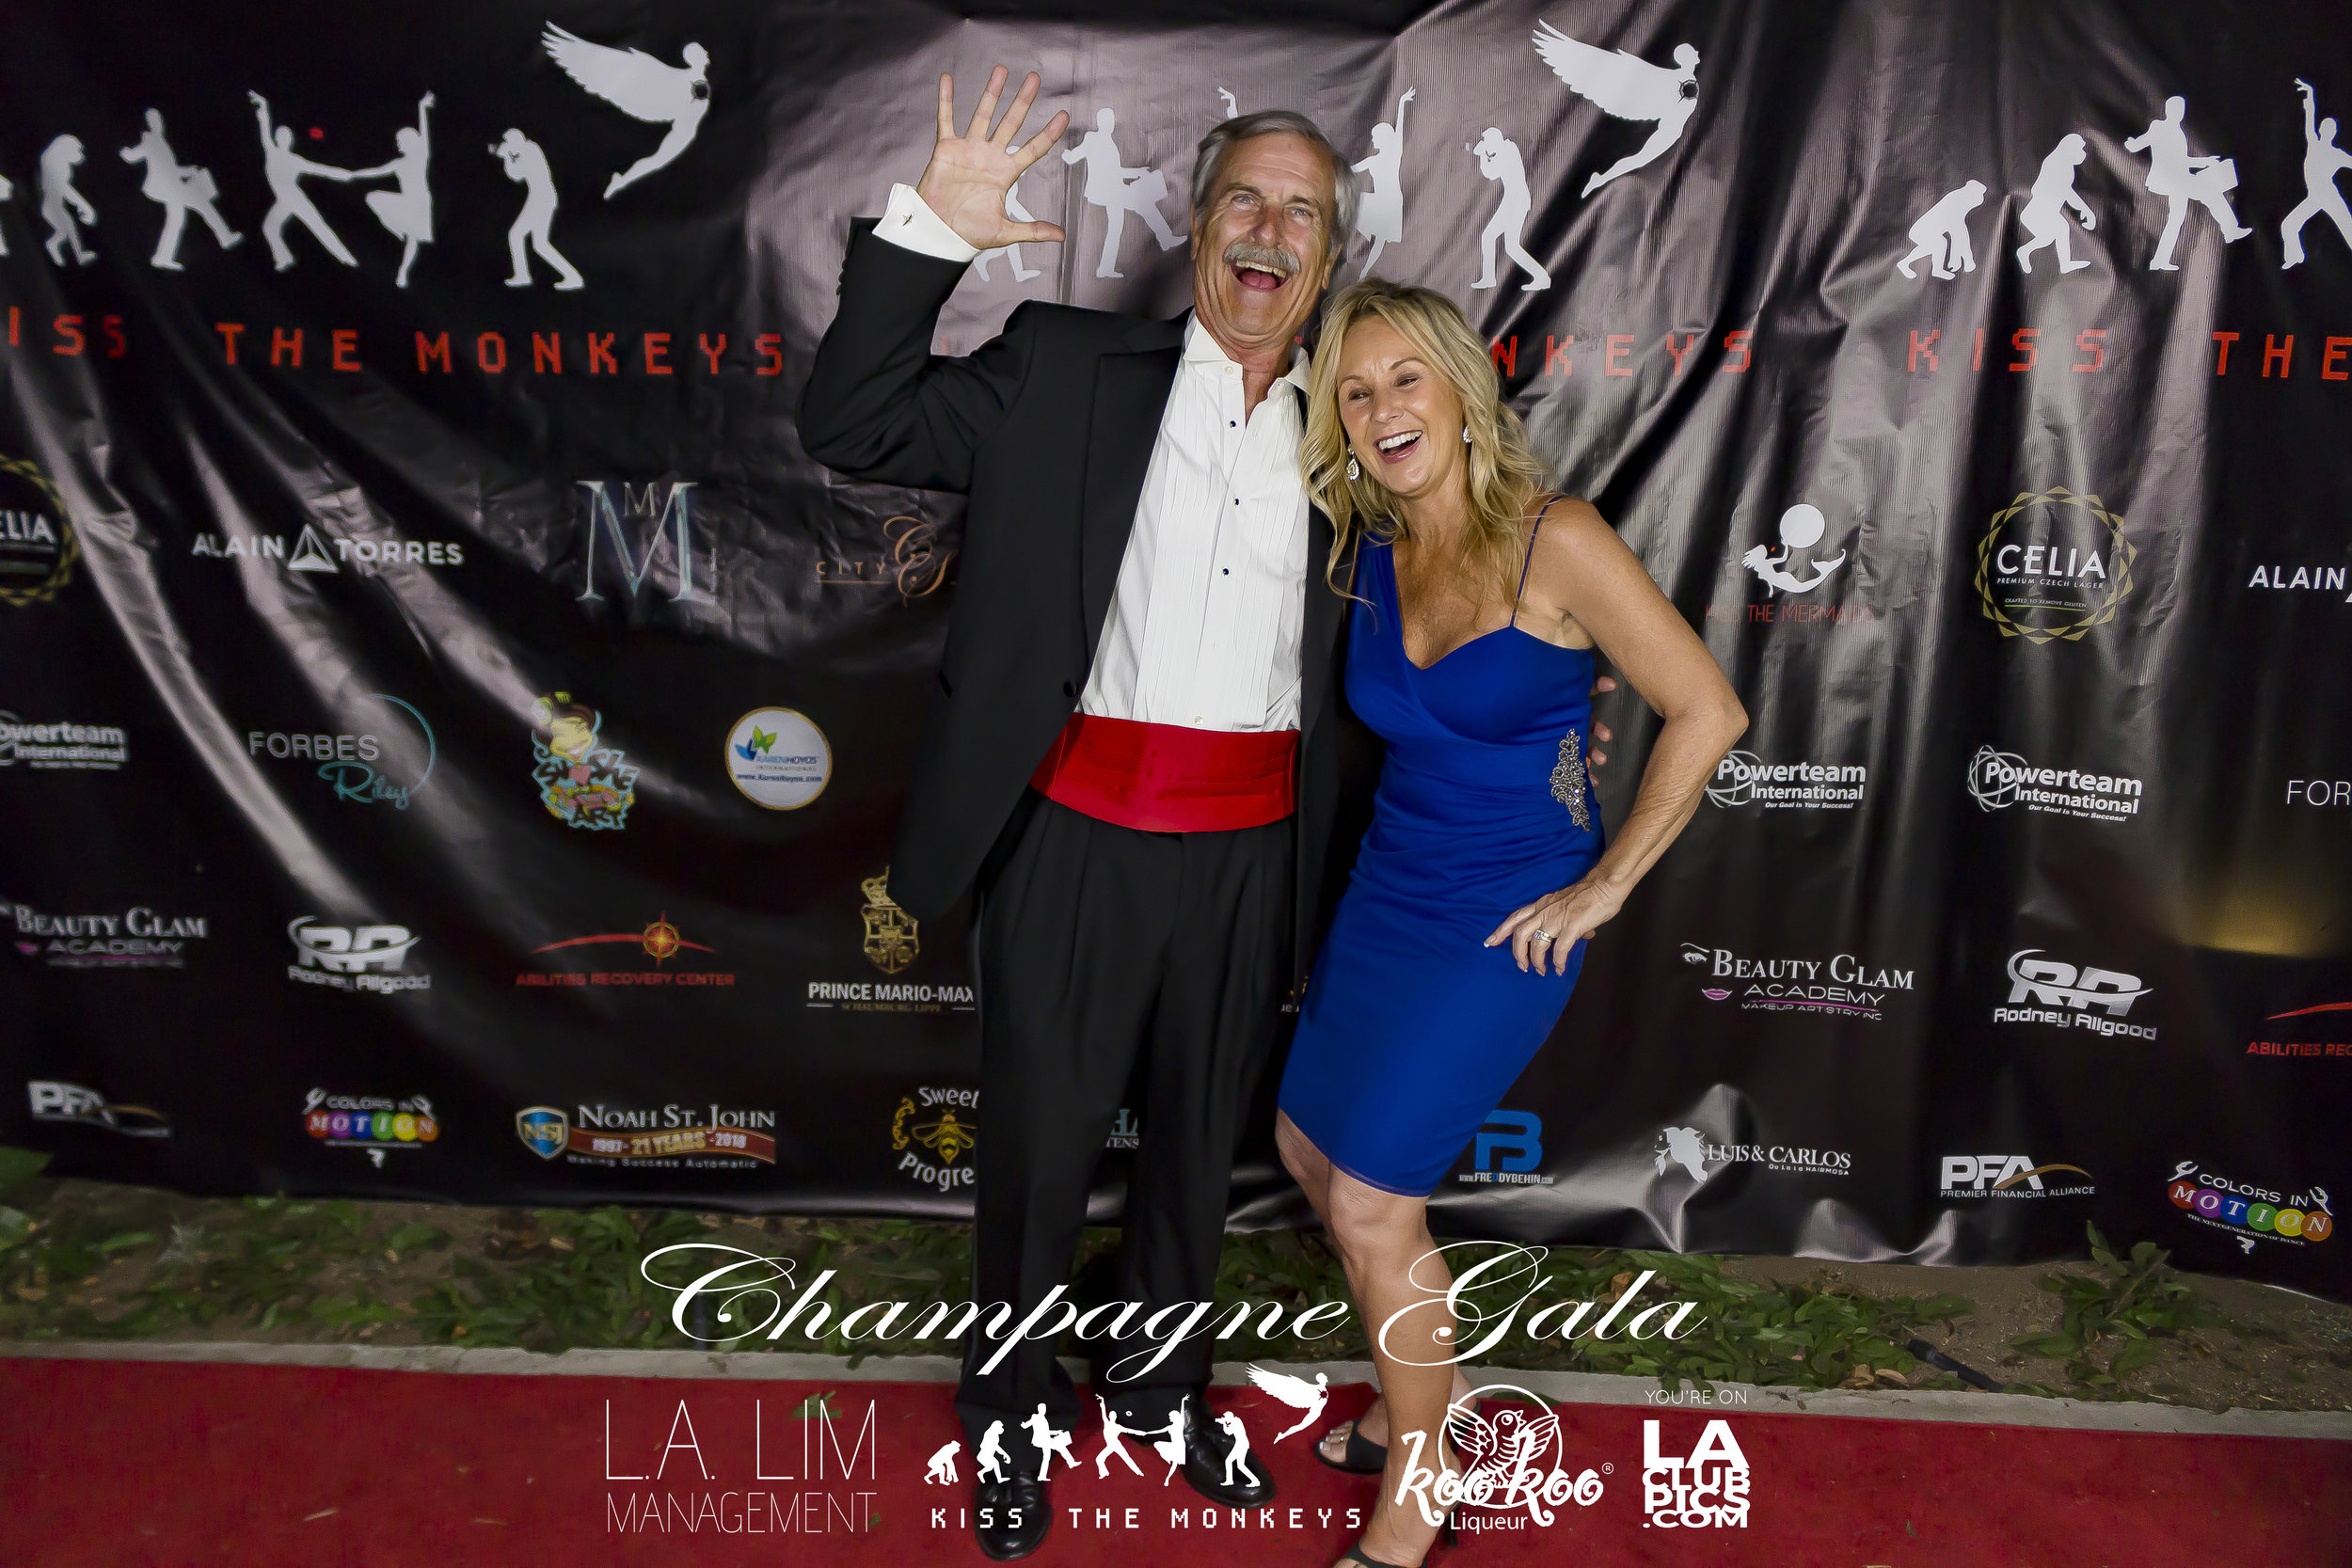 Kiss The Monkeys - Champagne Gala - 07-21-18_94.jpg